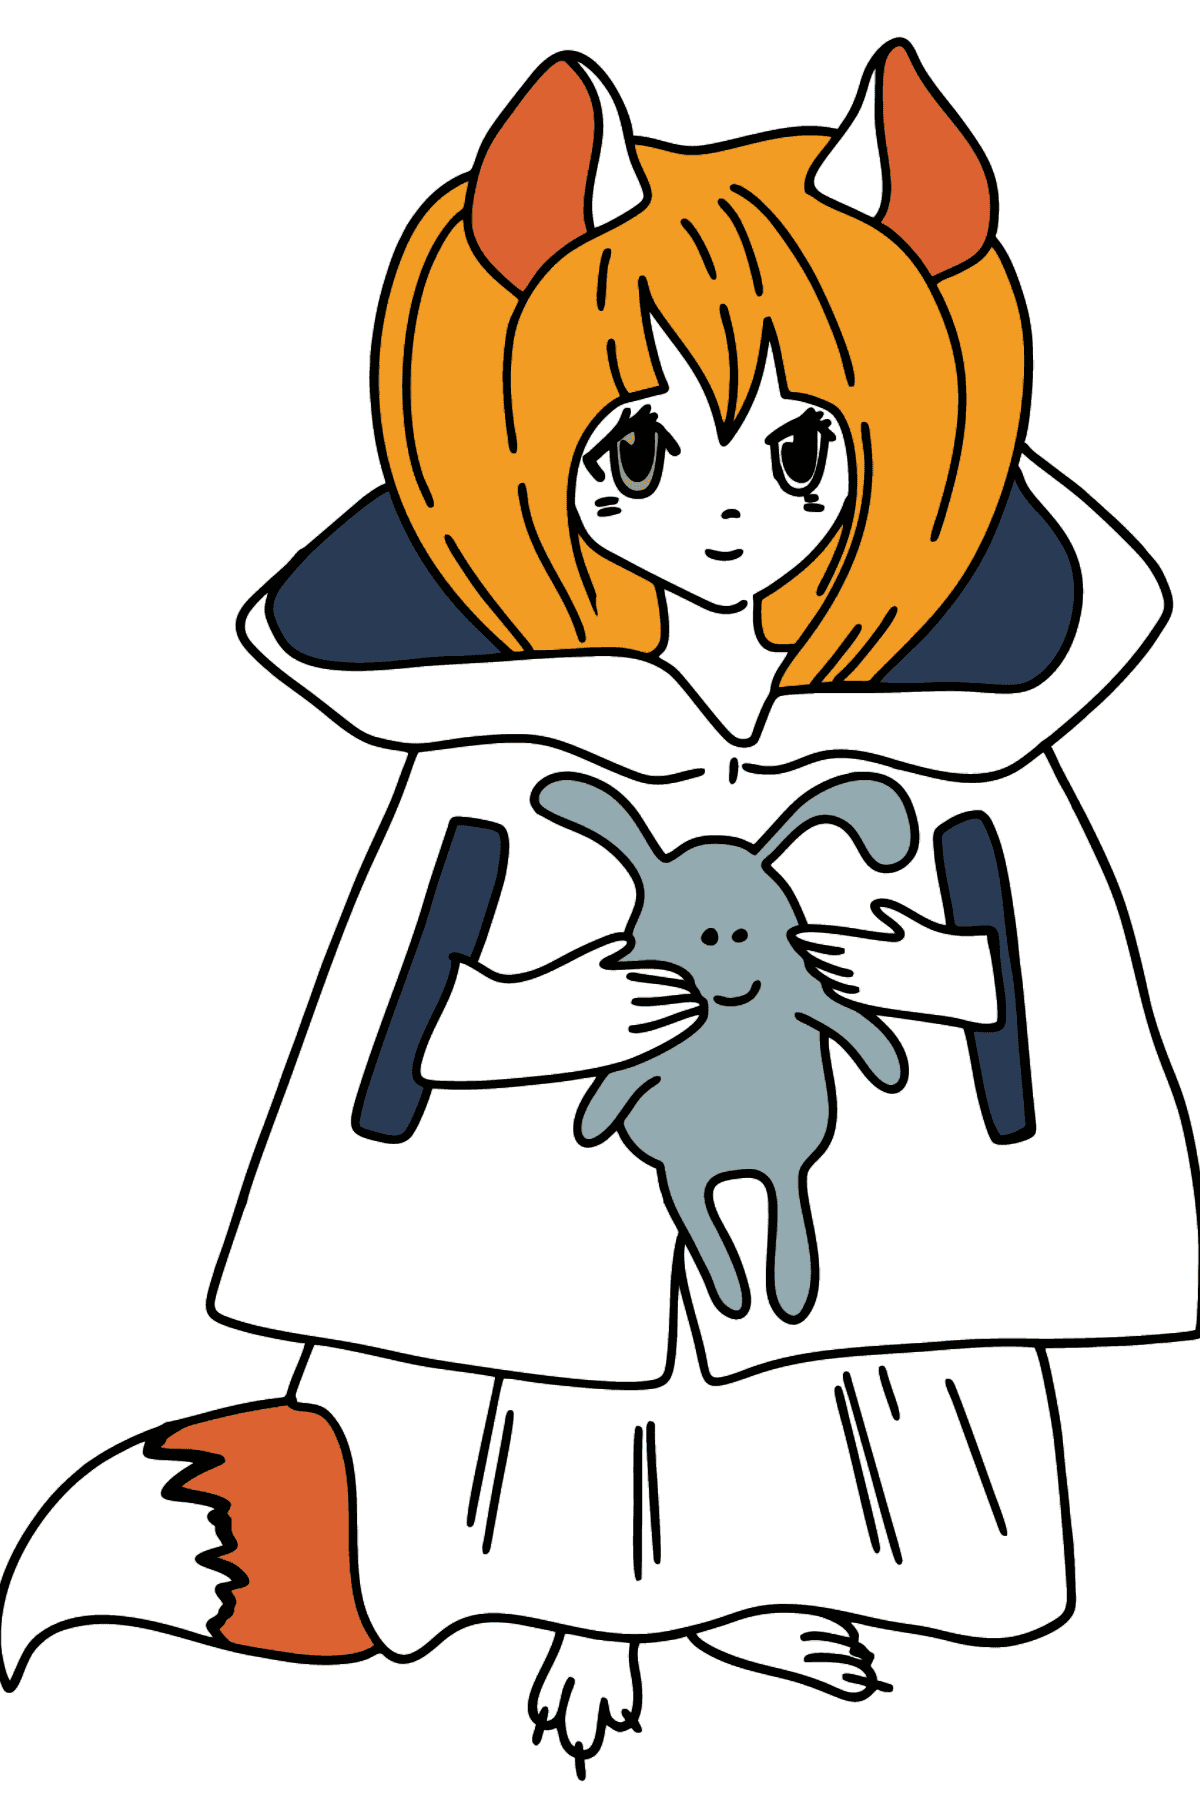 Anime Girl with Tail coloring page - Coloring Pages for Kids